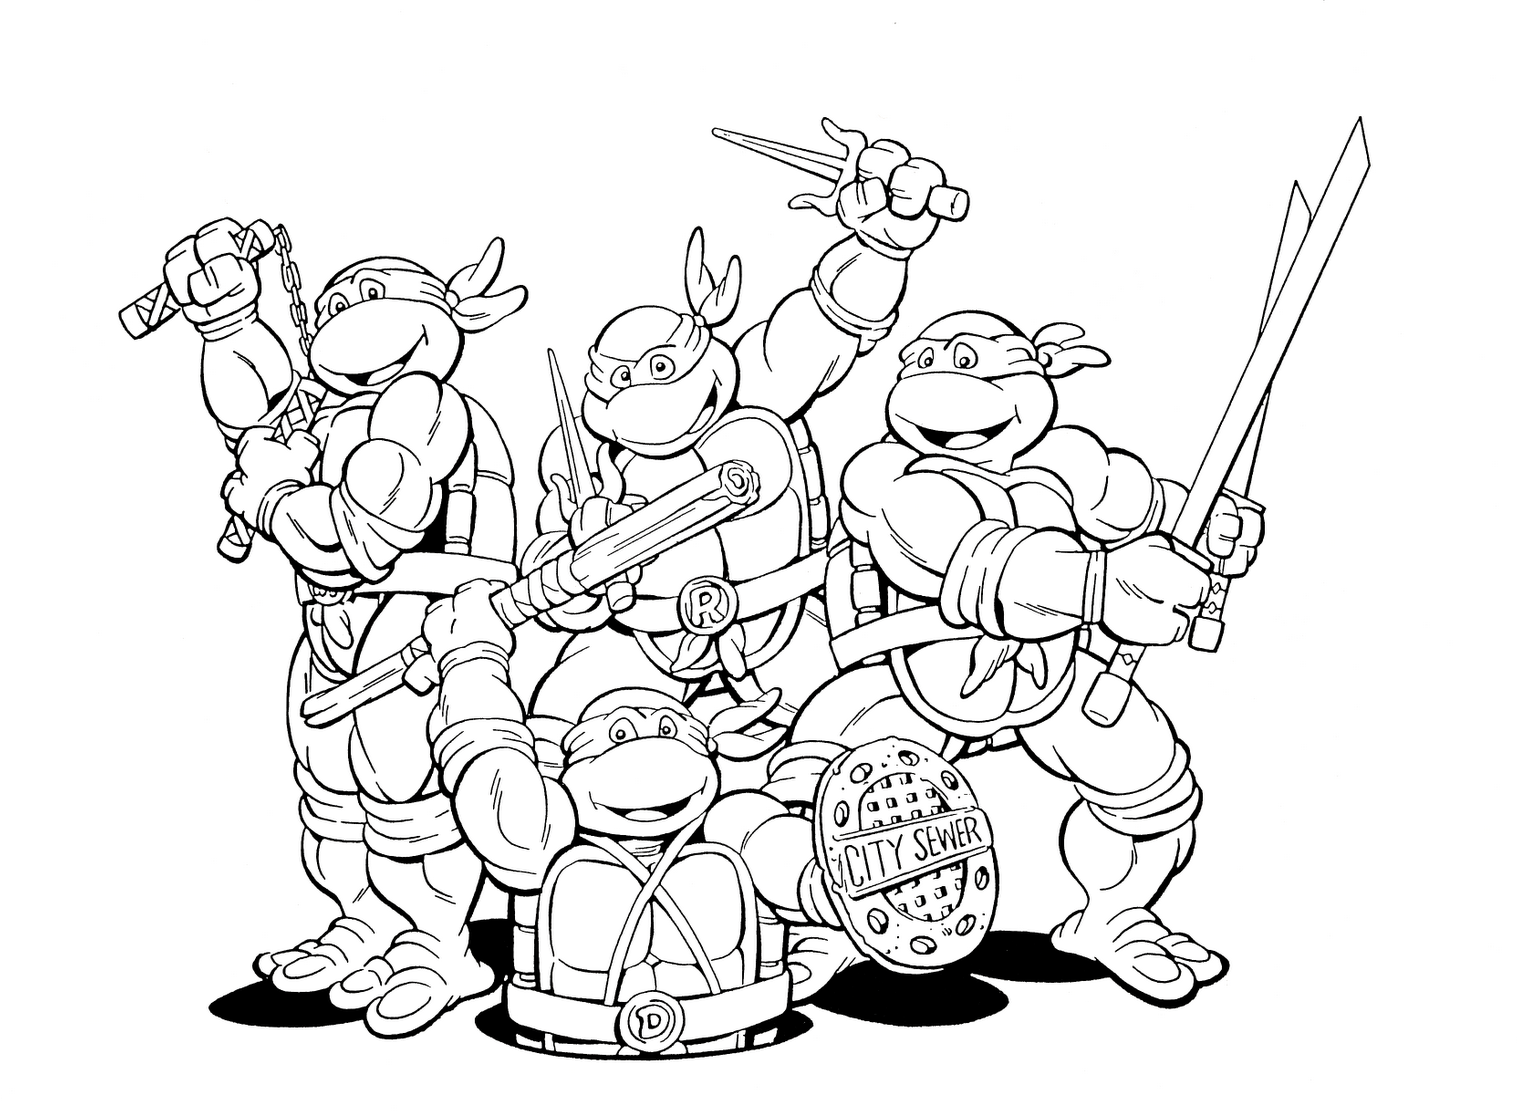 Ninja Turtles Funny Coloring Pages Creative Art Tips Pinterest